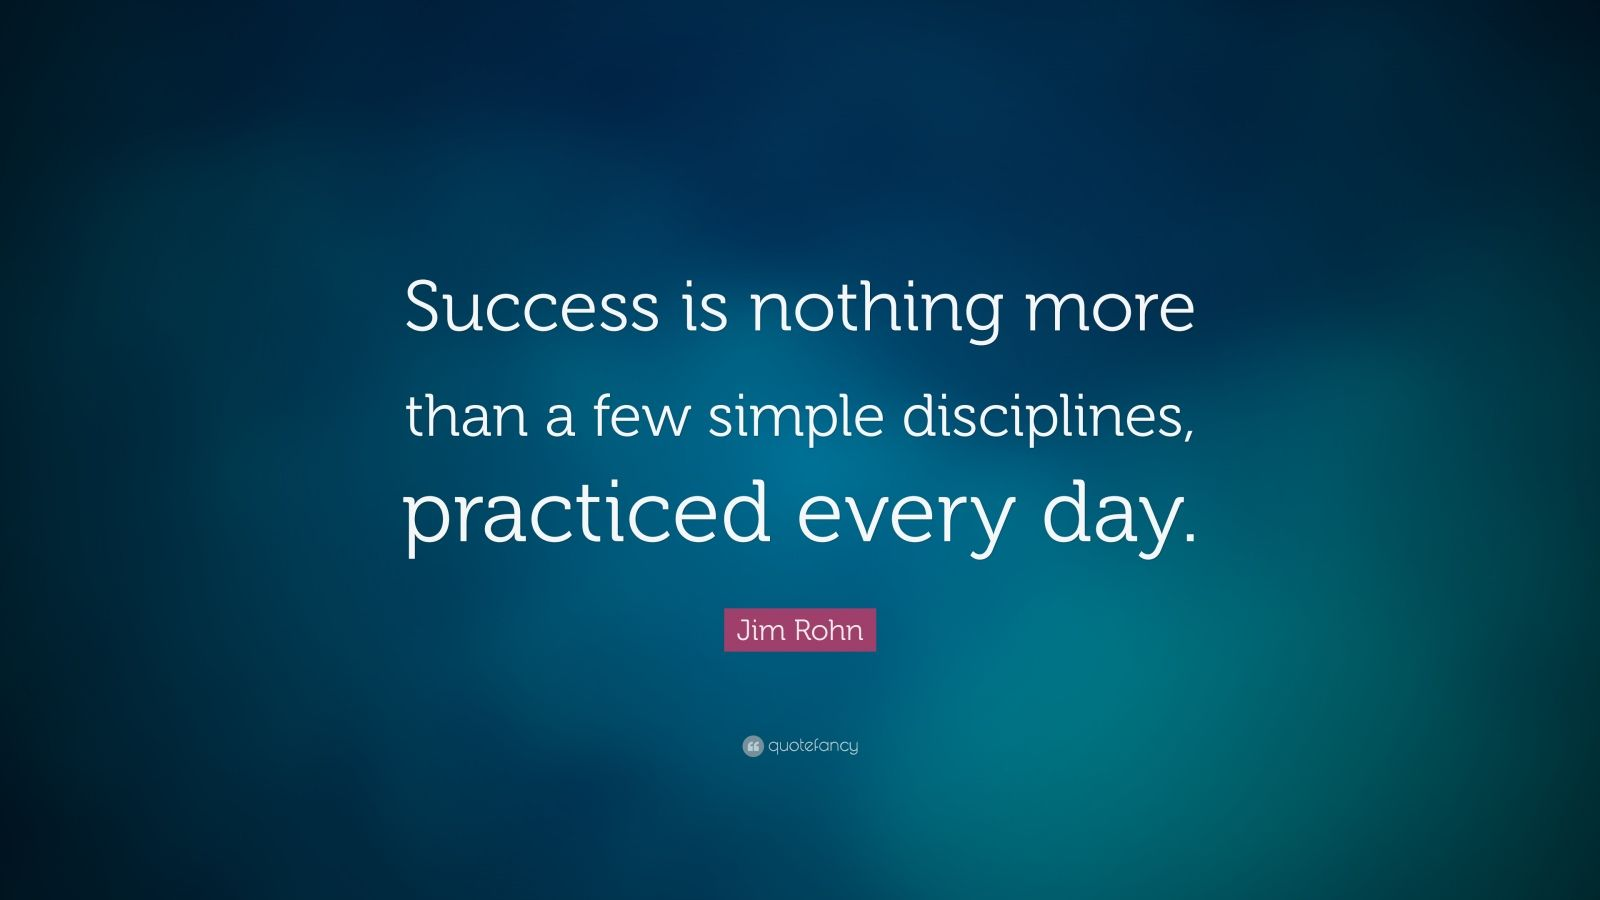 essay on proverb-nothing succeeds like success Nothing Succeds Like Success